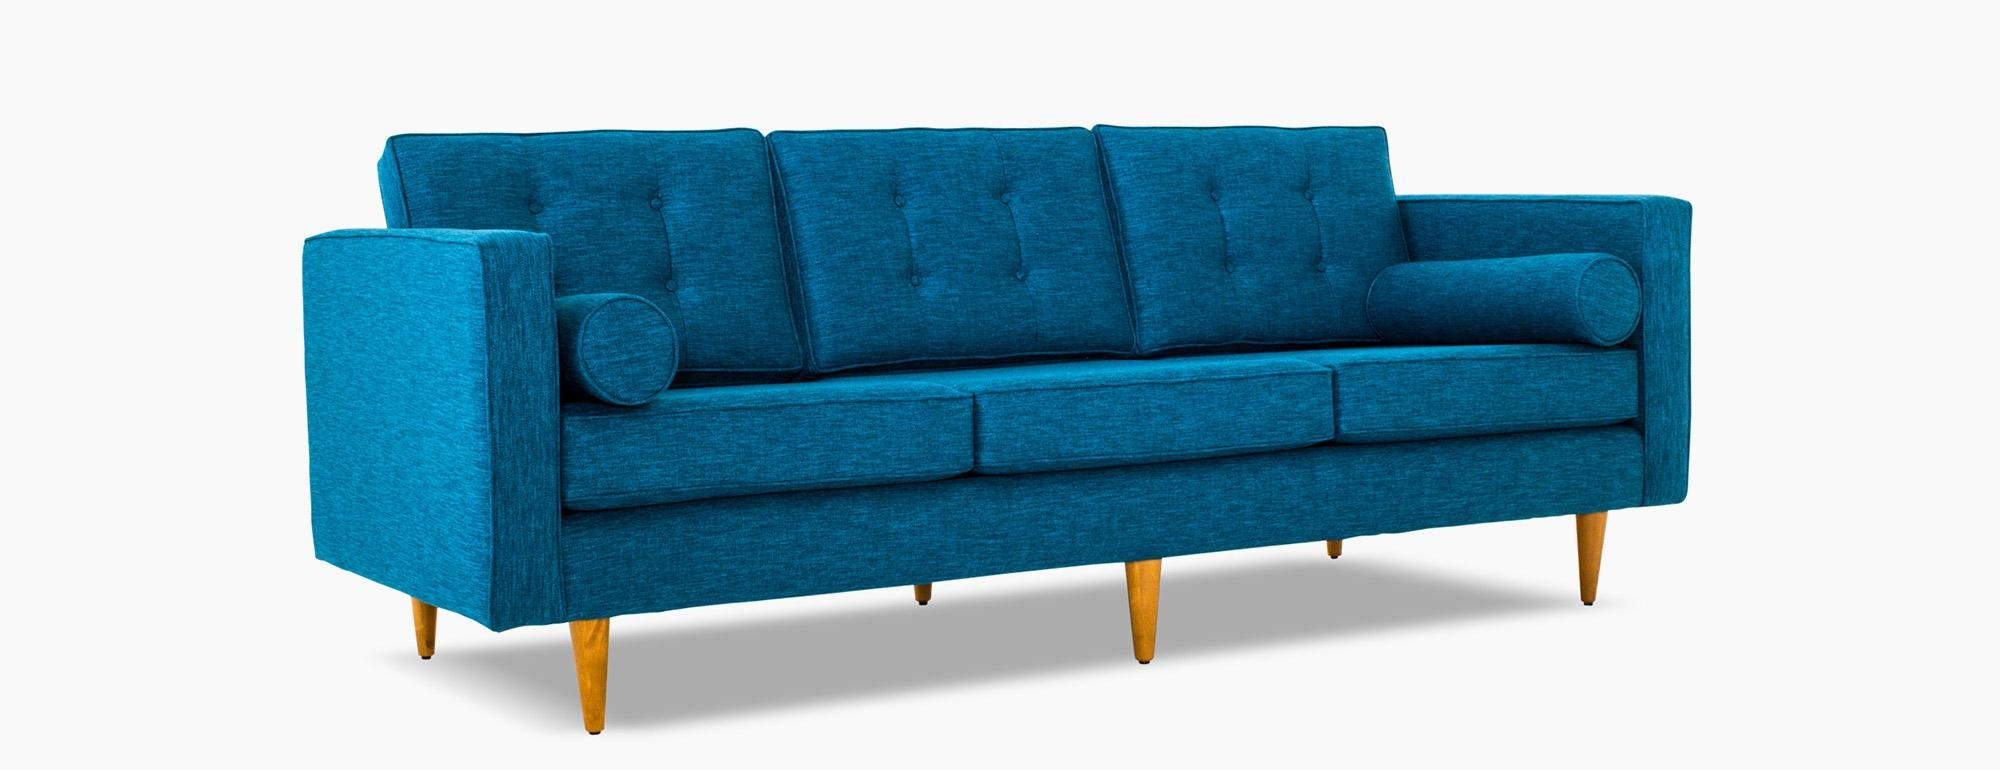 Braxton Sofa | Joybird Throughout Braxton Sofa (Image 16 Of 20)